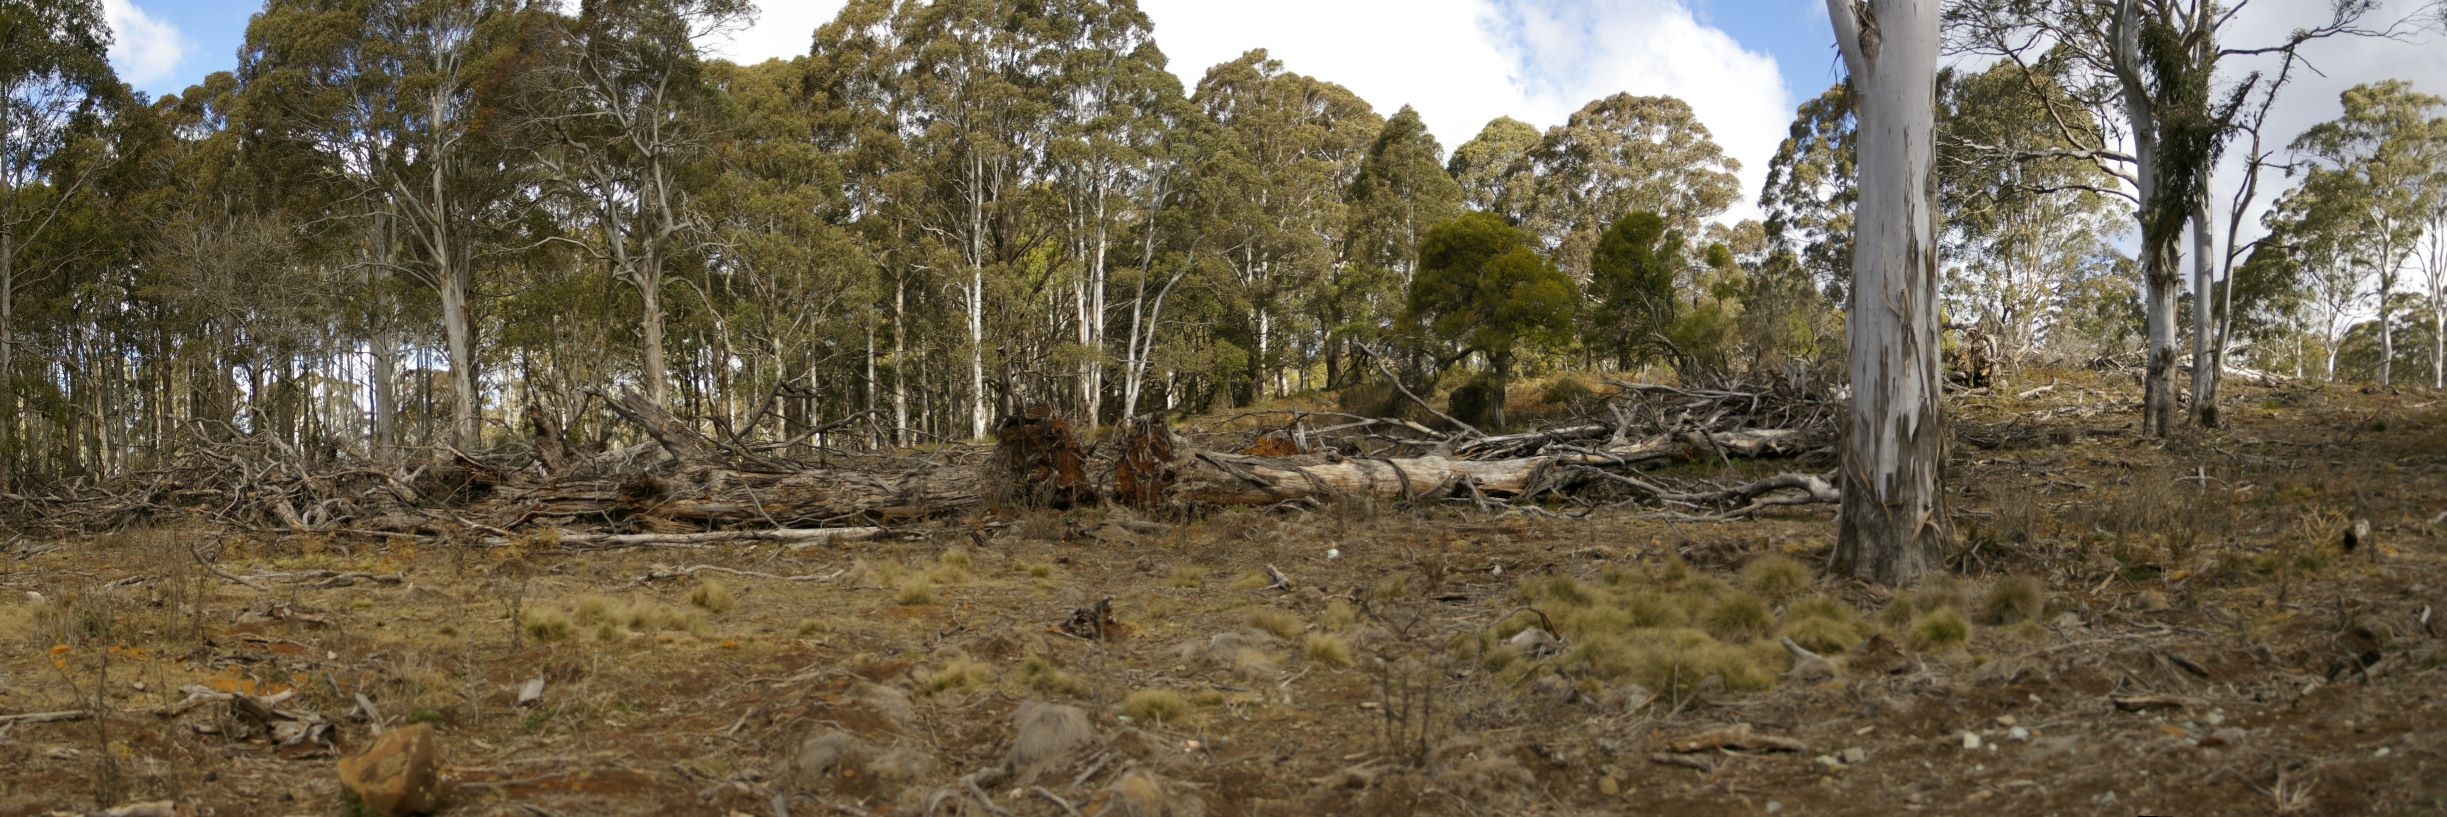 Berejiklian Government approves anti-science land clearing response to bushfire inquiry and opens the door to further clearing of Koala habitat